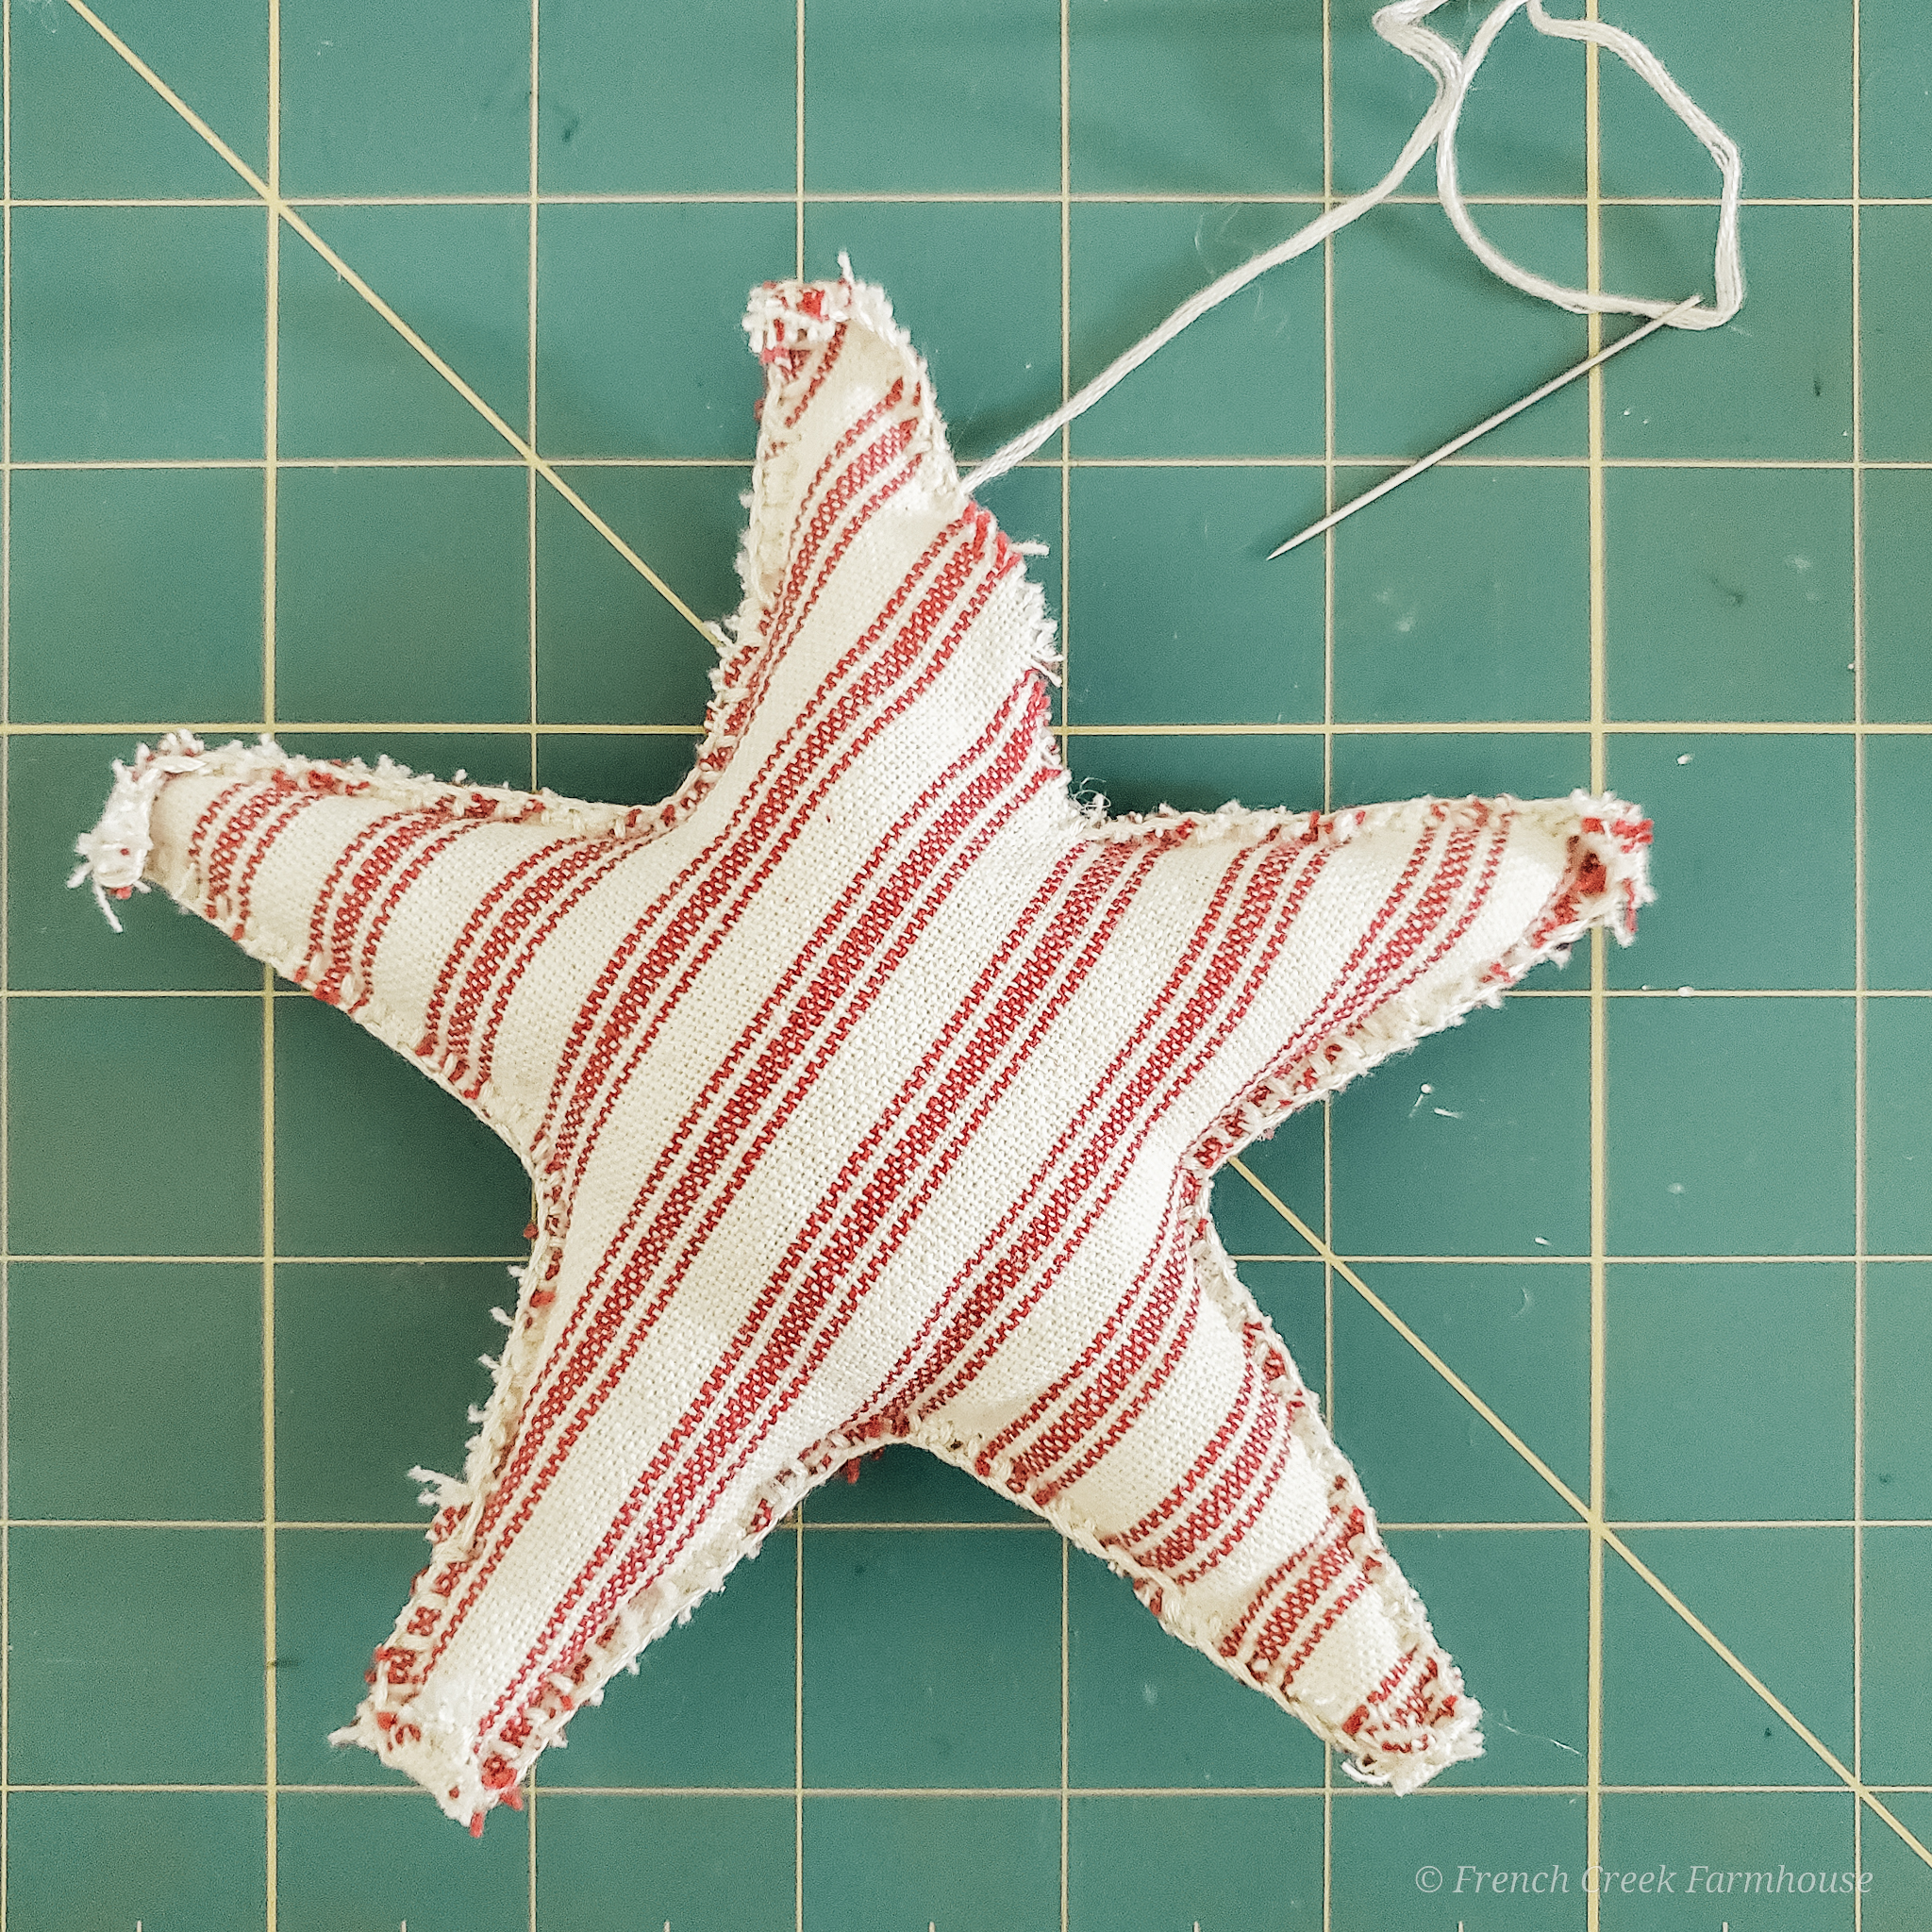 No sewing machine required for this easy DIY craft